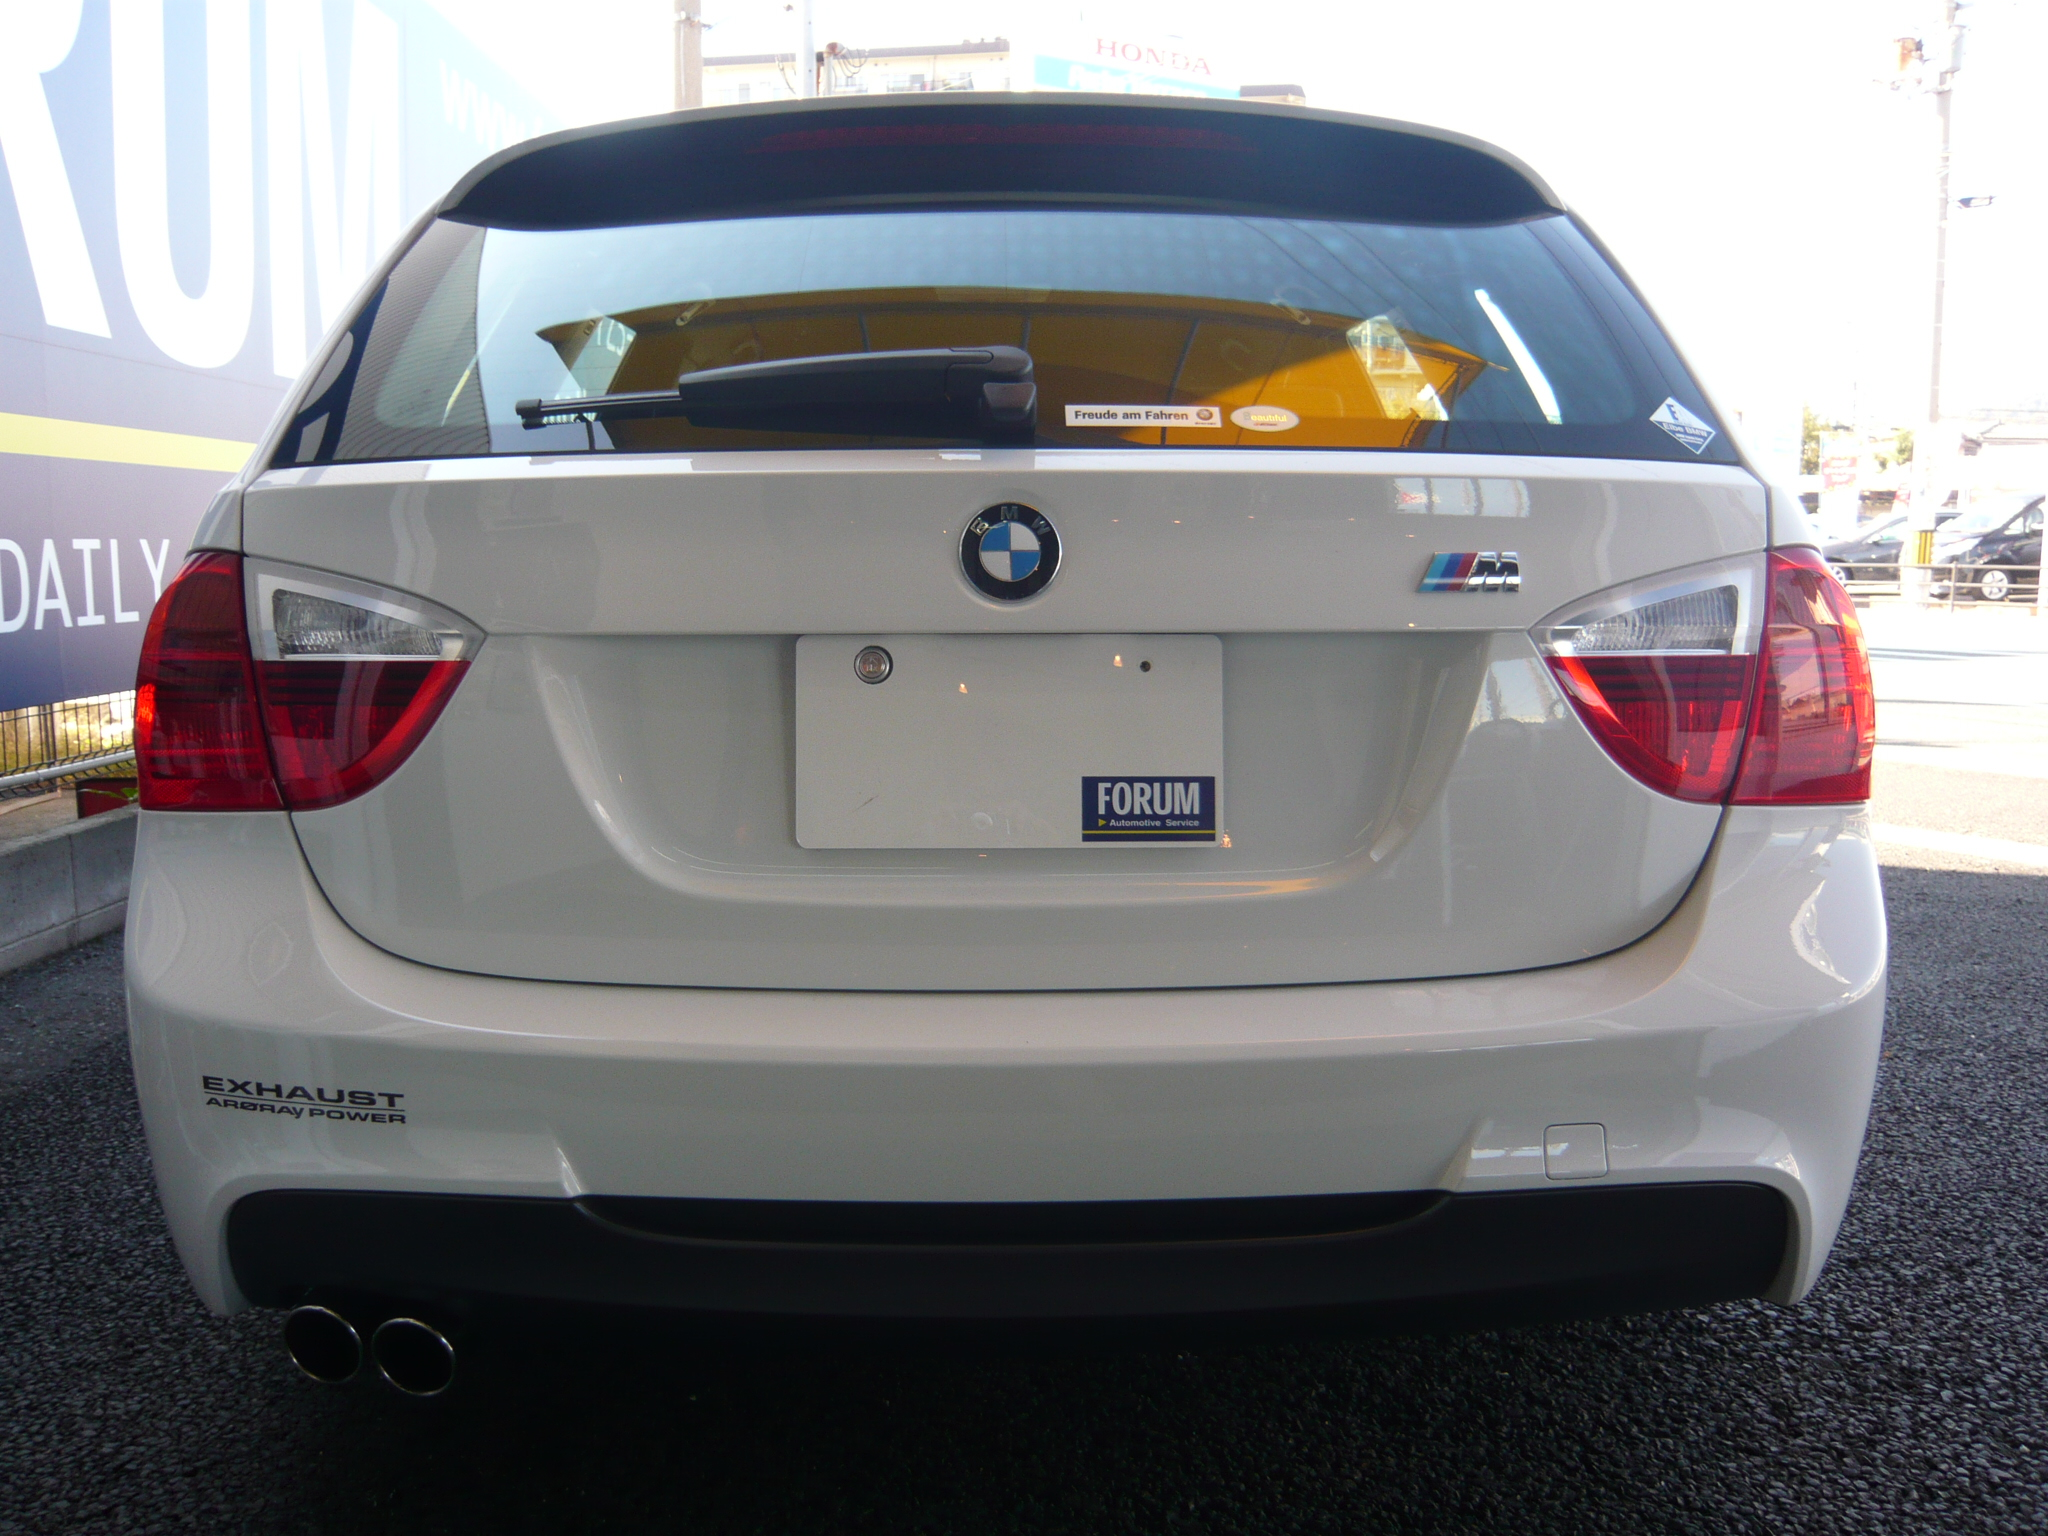 BMW <font size=4 color=red face=Impact>SOLD OUT</font> 320iツーリング